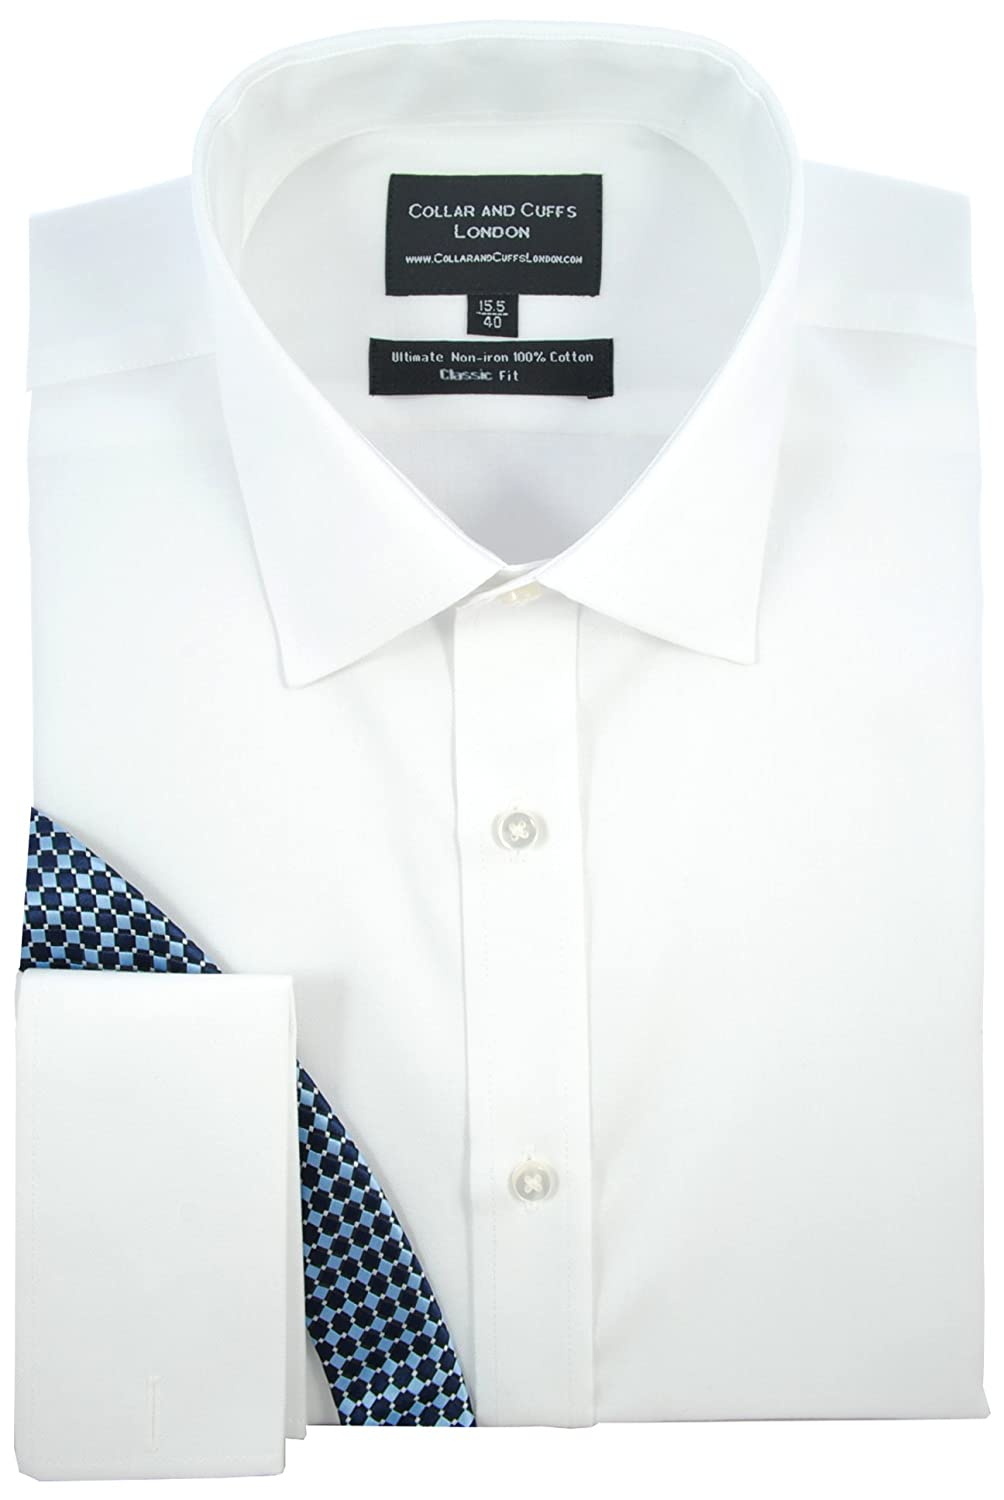 COLLAR AND CUFFS LONDON Camisa Formal - Camisa - para Hombre